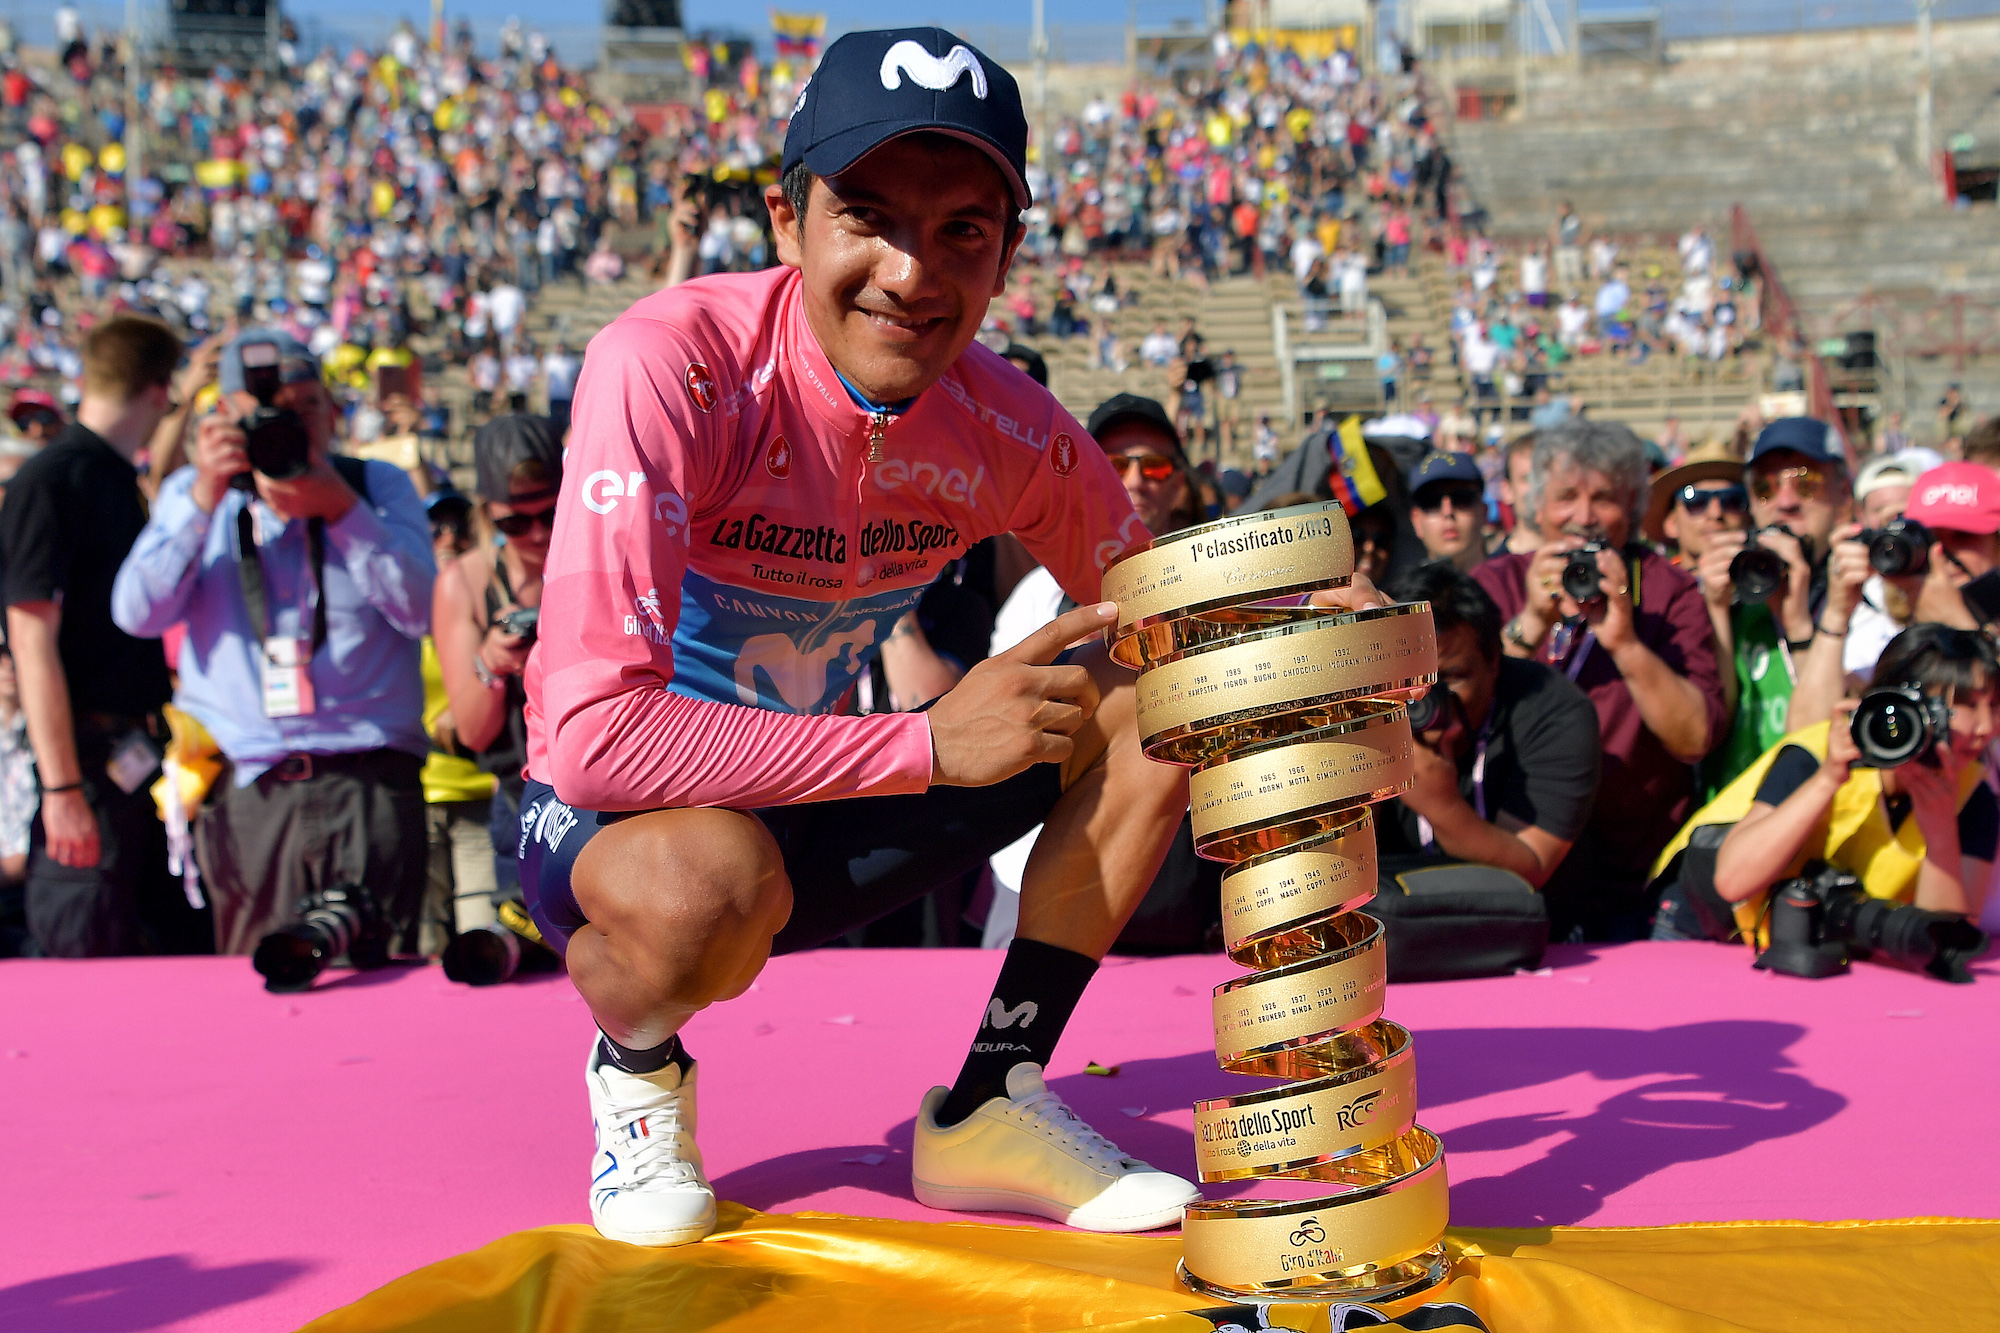 Richard Carapaz may have to ride and drive 900km to catch flight to Europe to defend Giro d'Italia title - Cycling Weekly